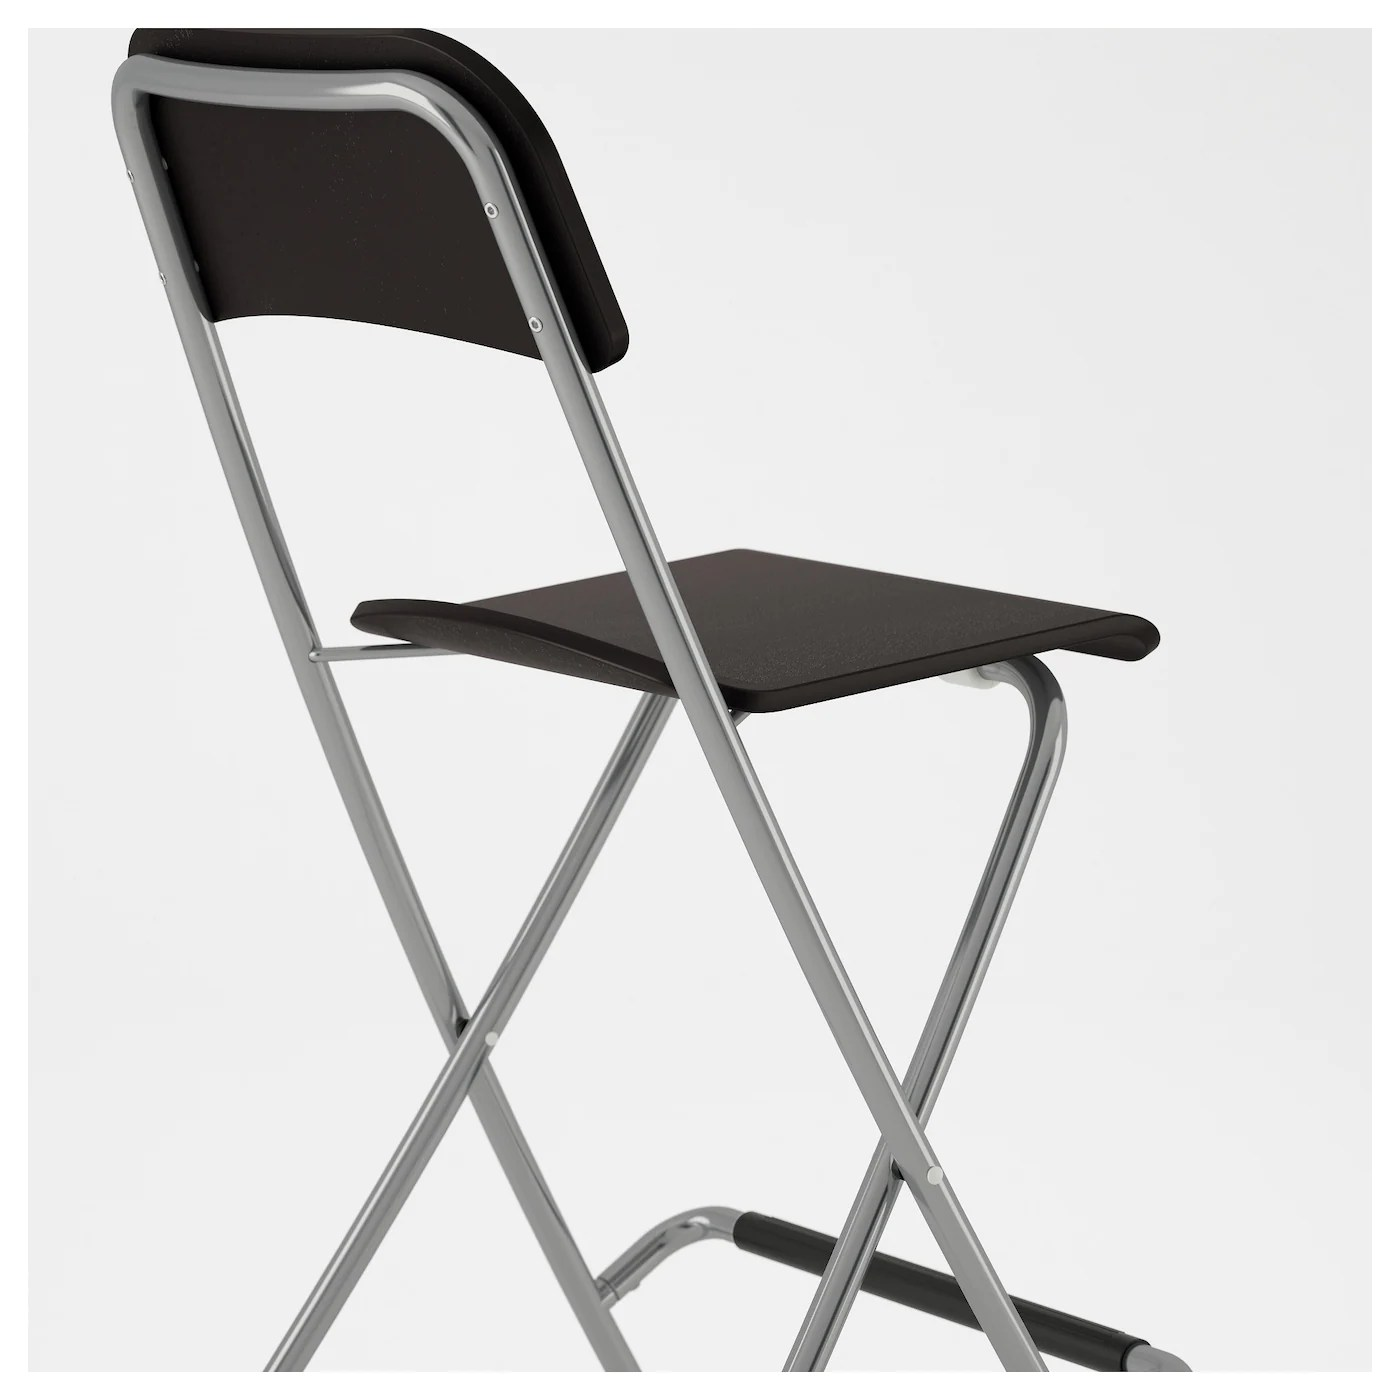 folding chair ikea repair garden chairs franklin bar stool with backrest foldable brown black